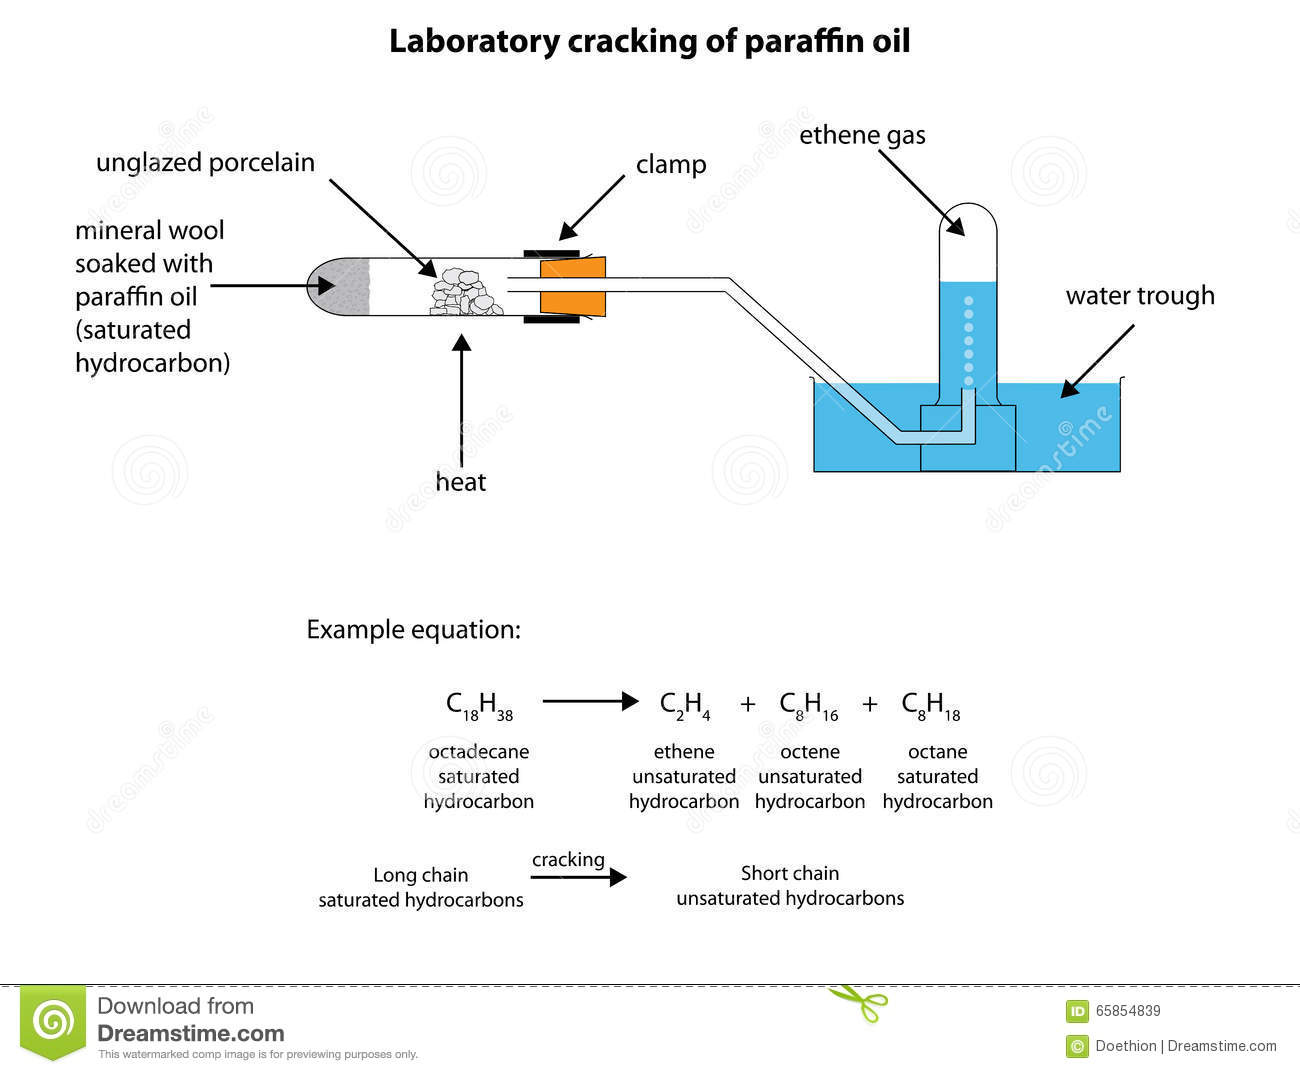 labelled diagram for laboratory cracking of paraffin oil